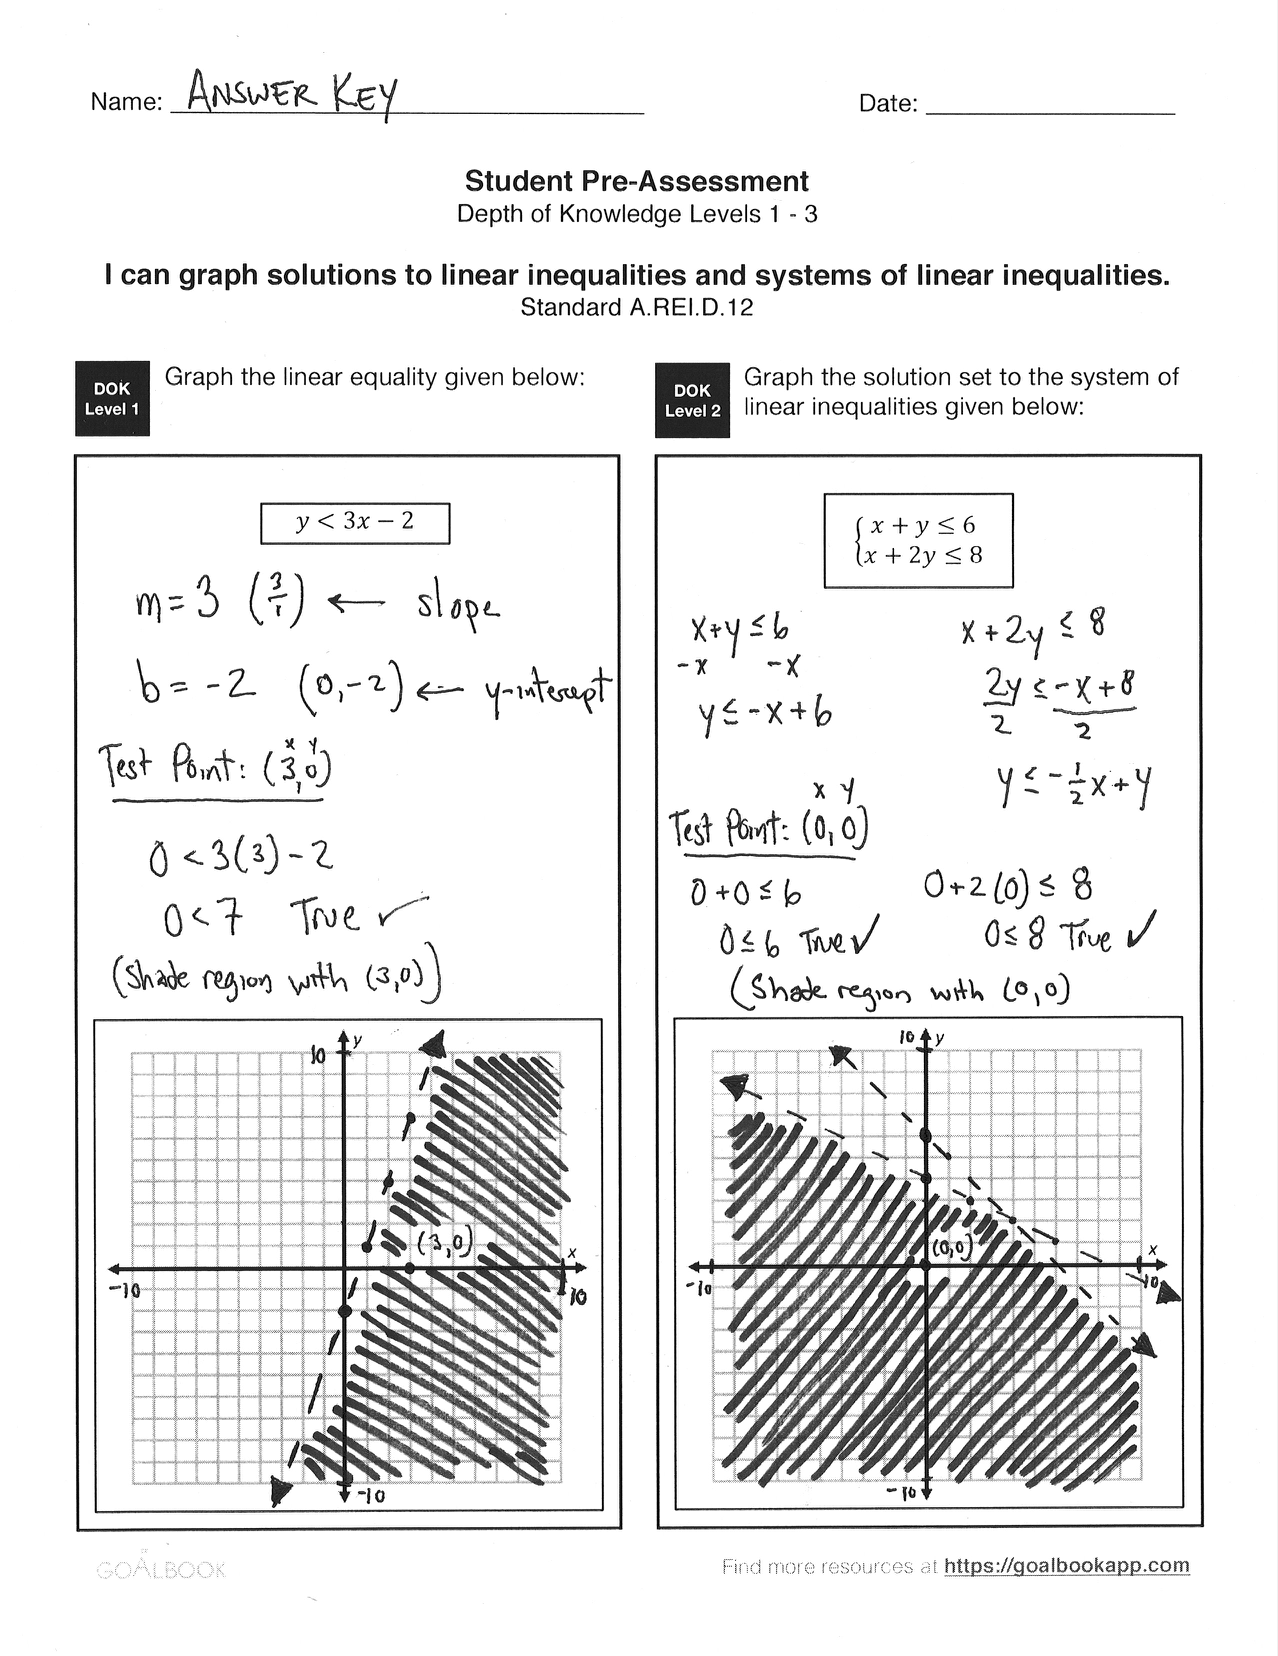 Worksheets Graphing Linear Inequalities In Two Variables Worksheet hsa rei 12 graph two variable linear inequalities math high full resource contains